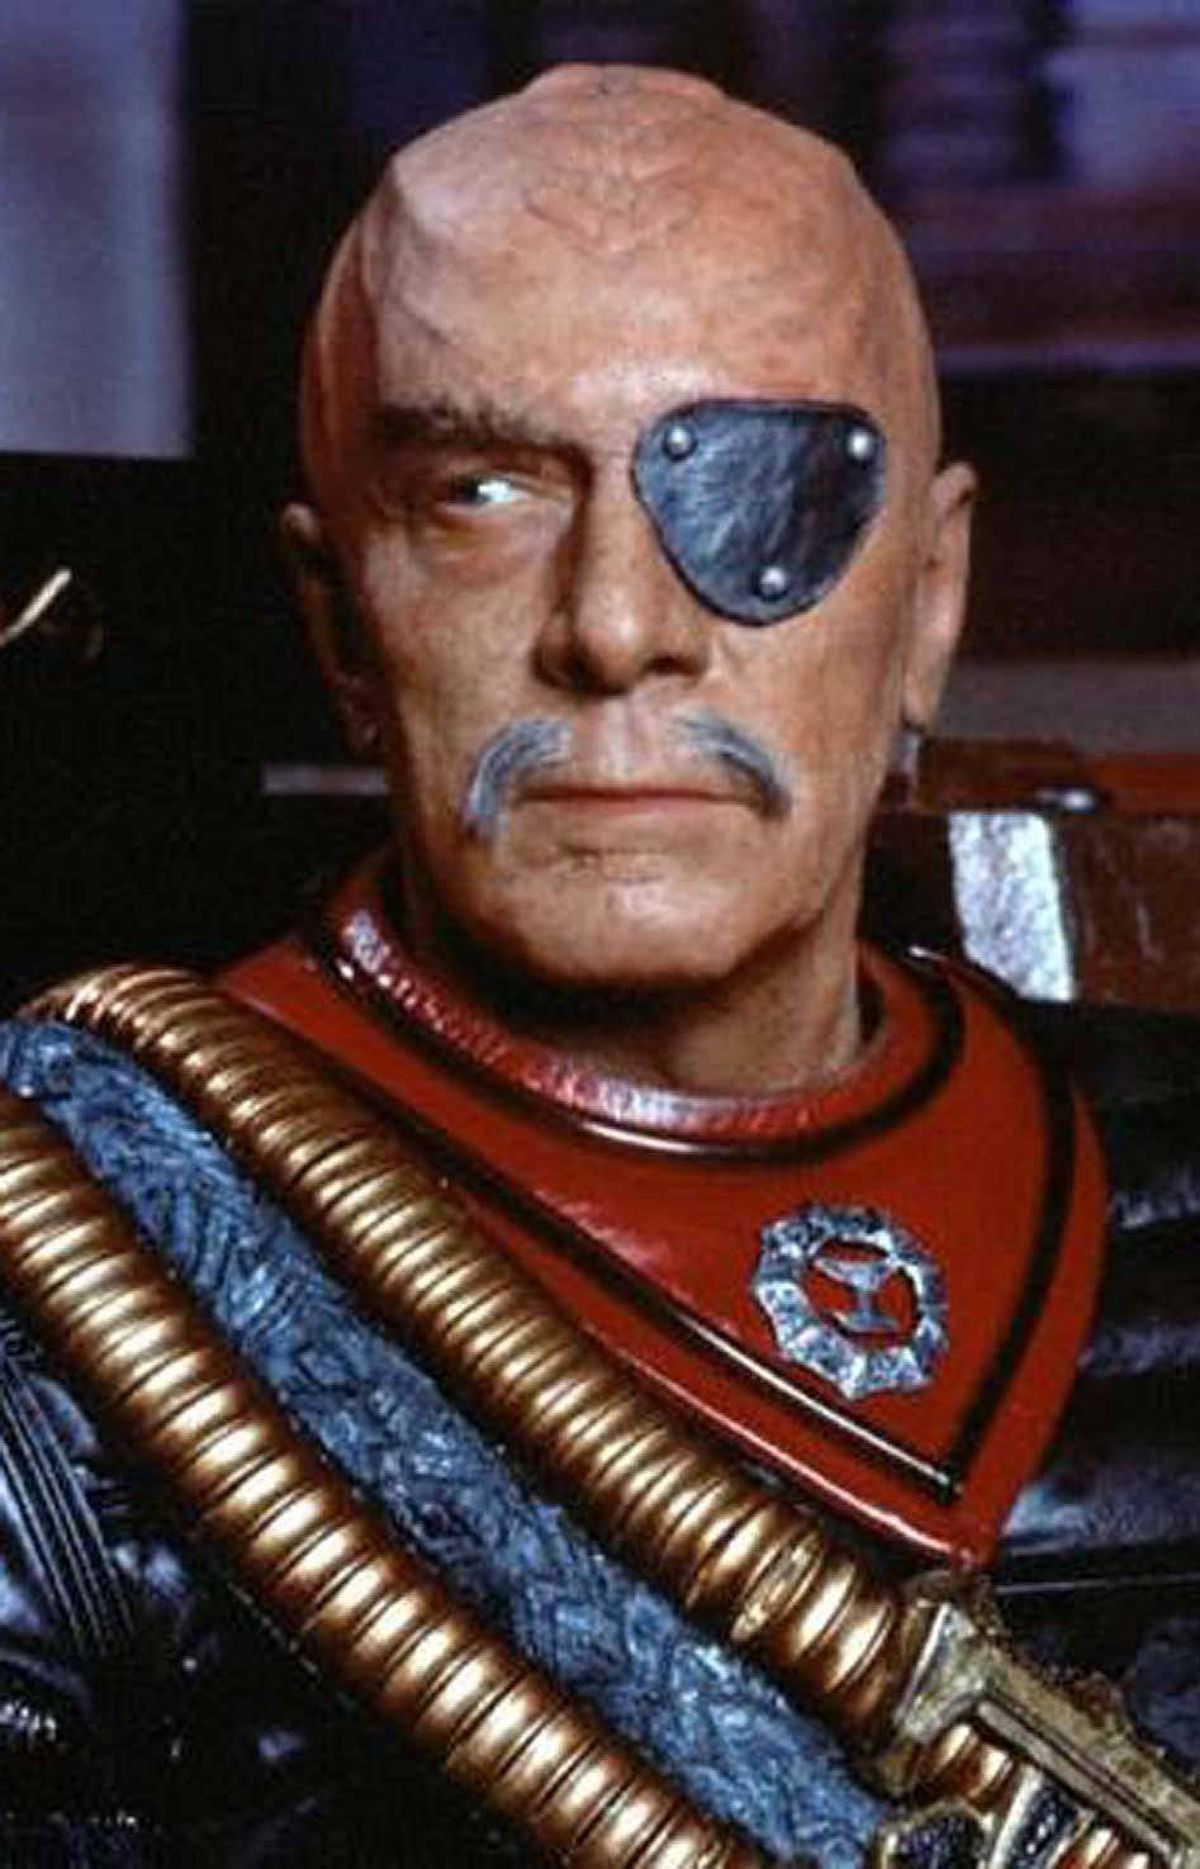 Christopher Plummer as General Chang in Star Trek VI: The Undiscovered Country (1991).